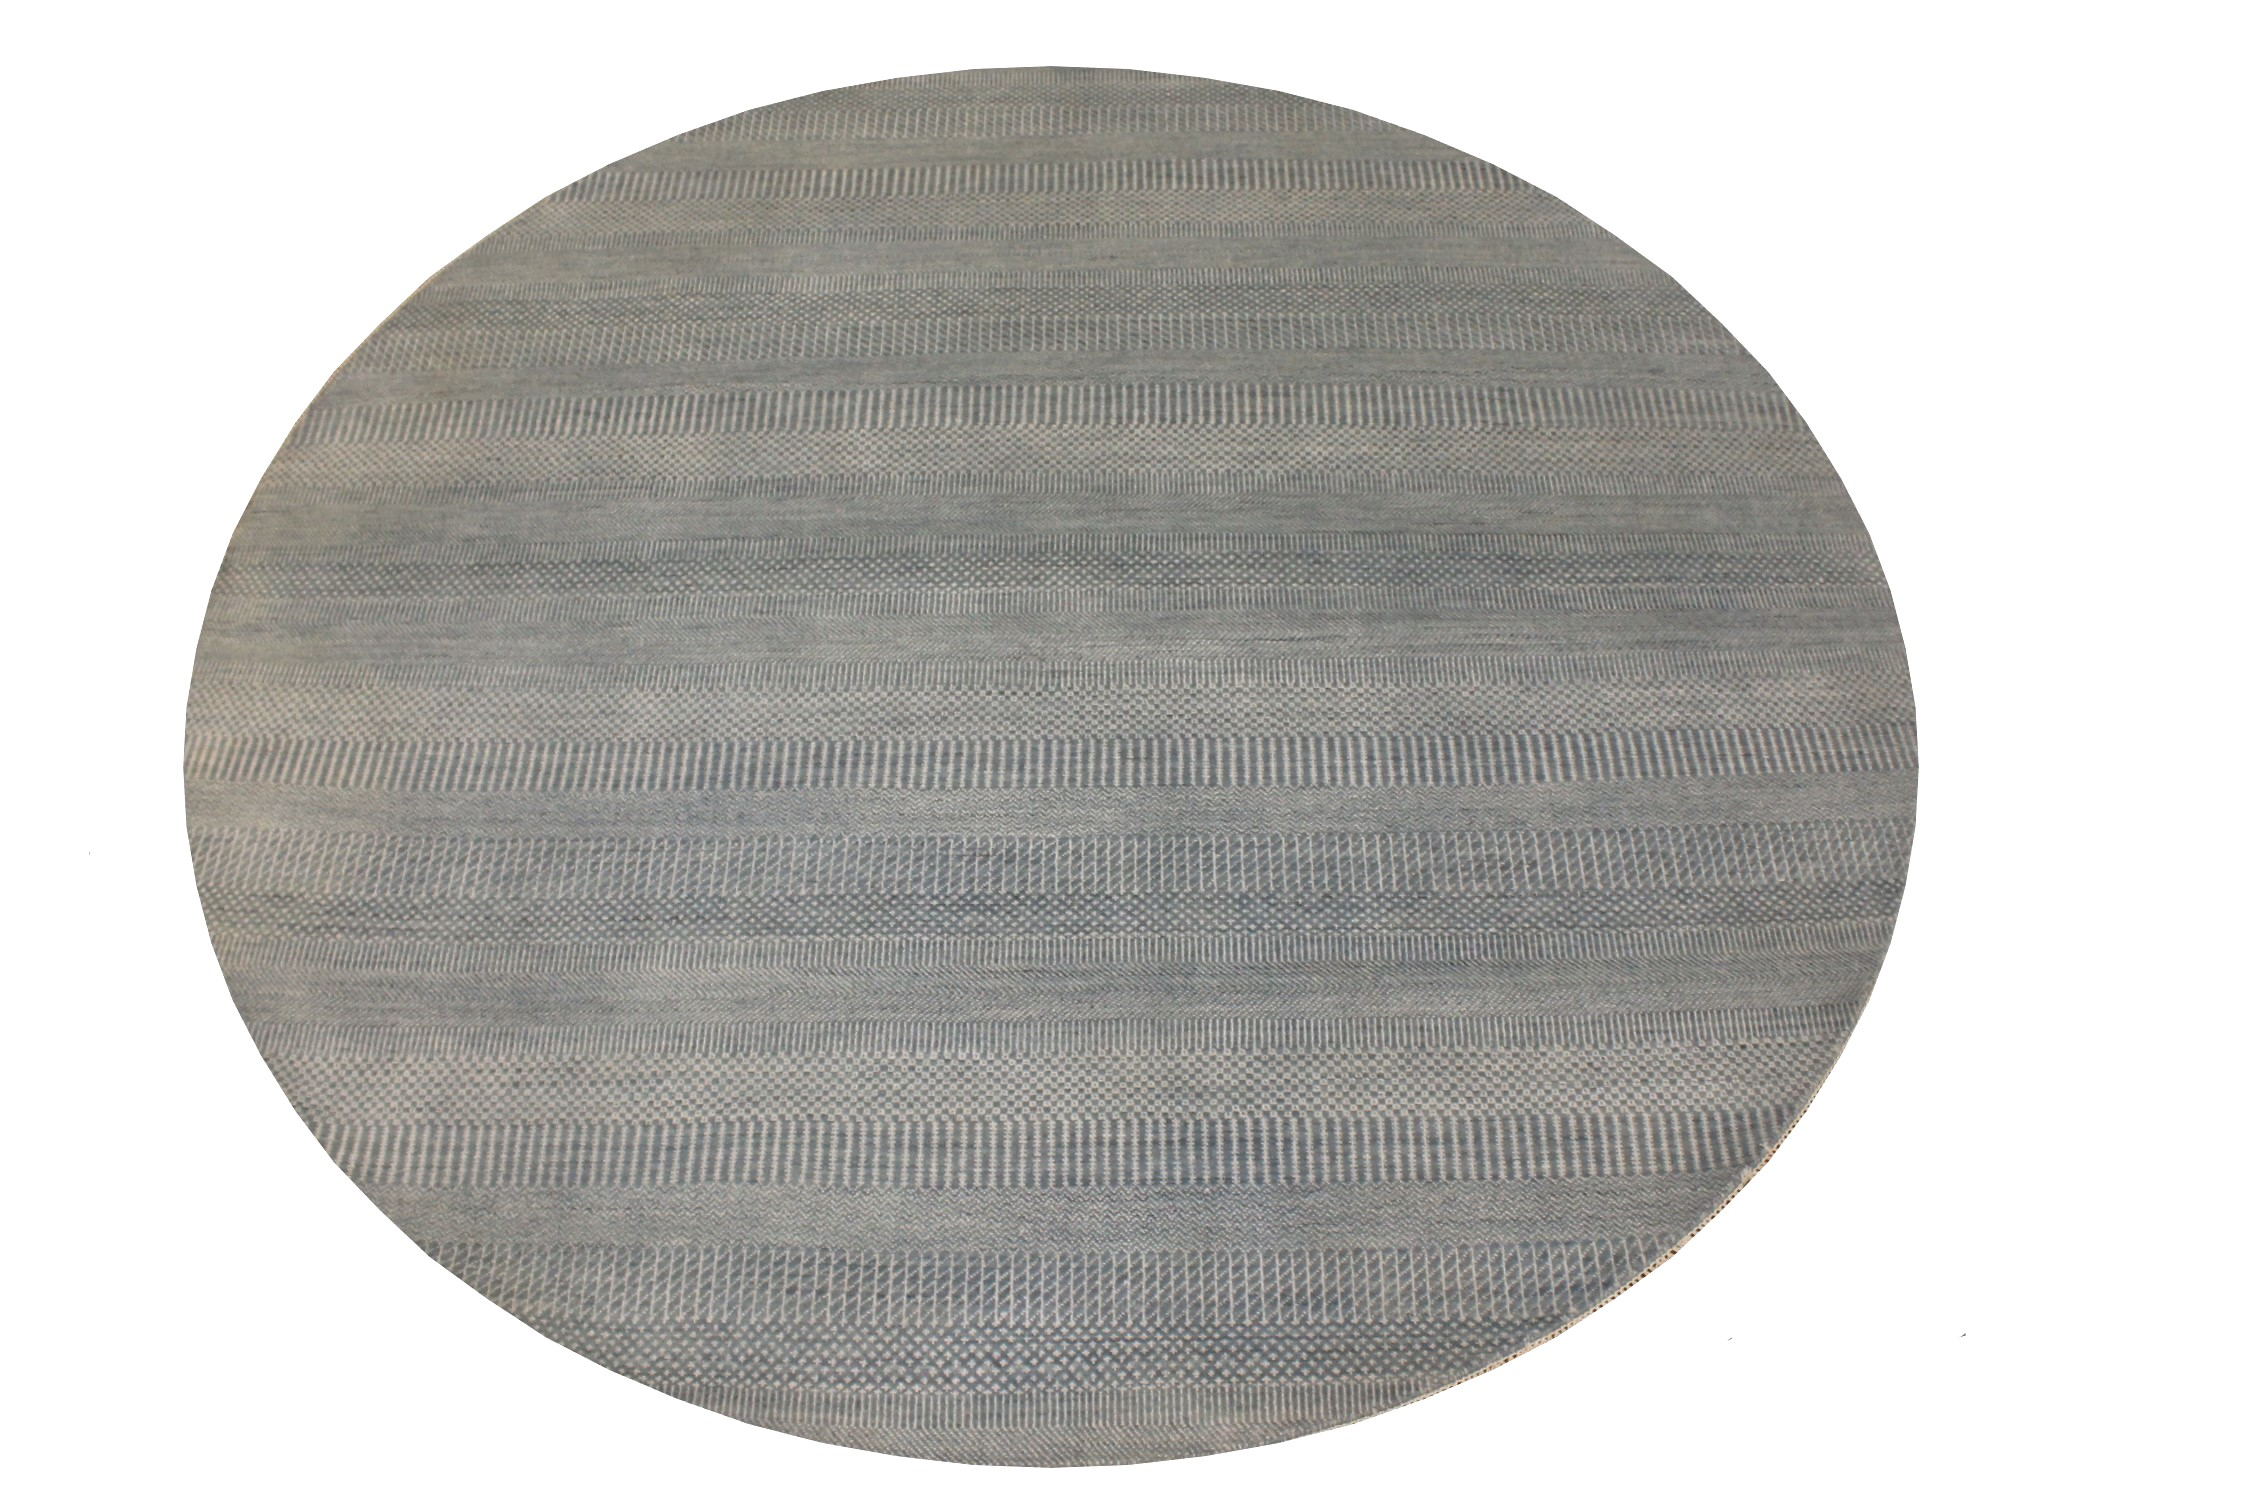 8 ft. Round & Square Casual Hand Knotted Wool & Viscose Area Rug - MR024071